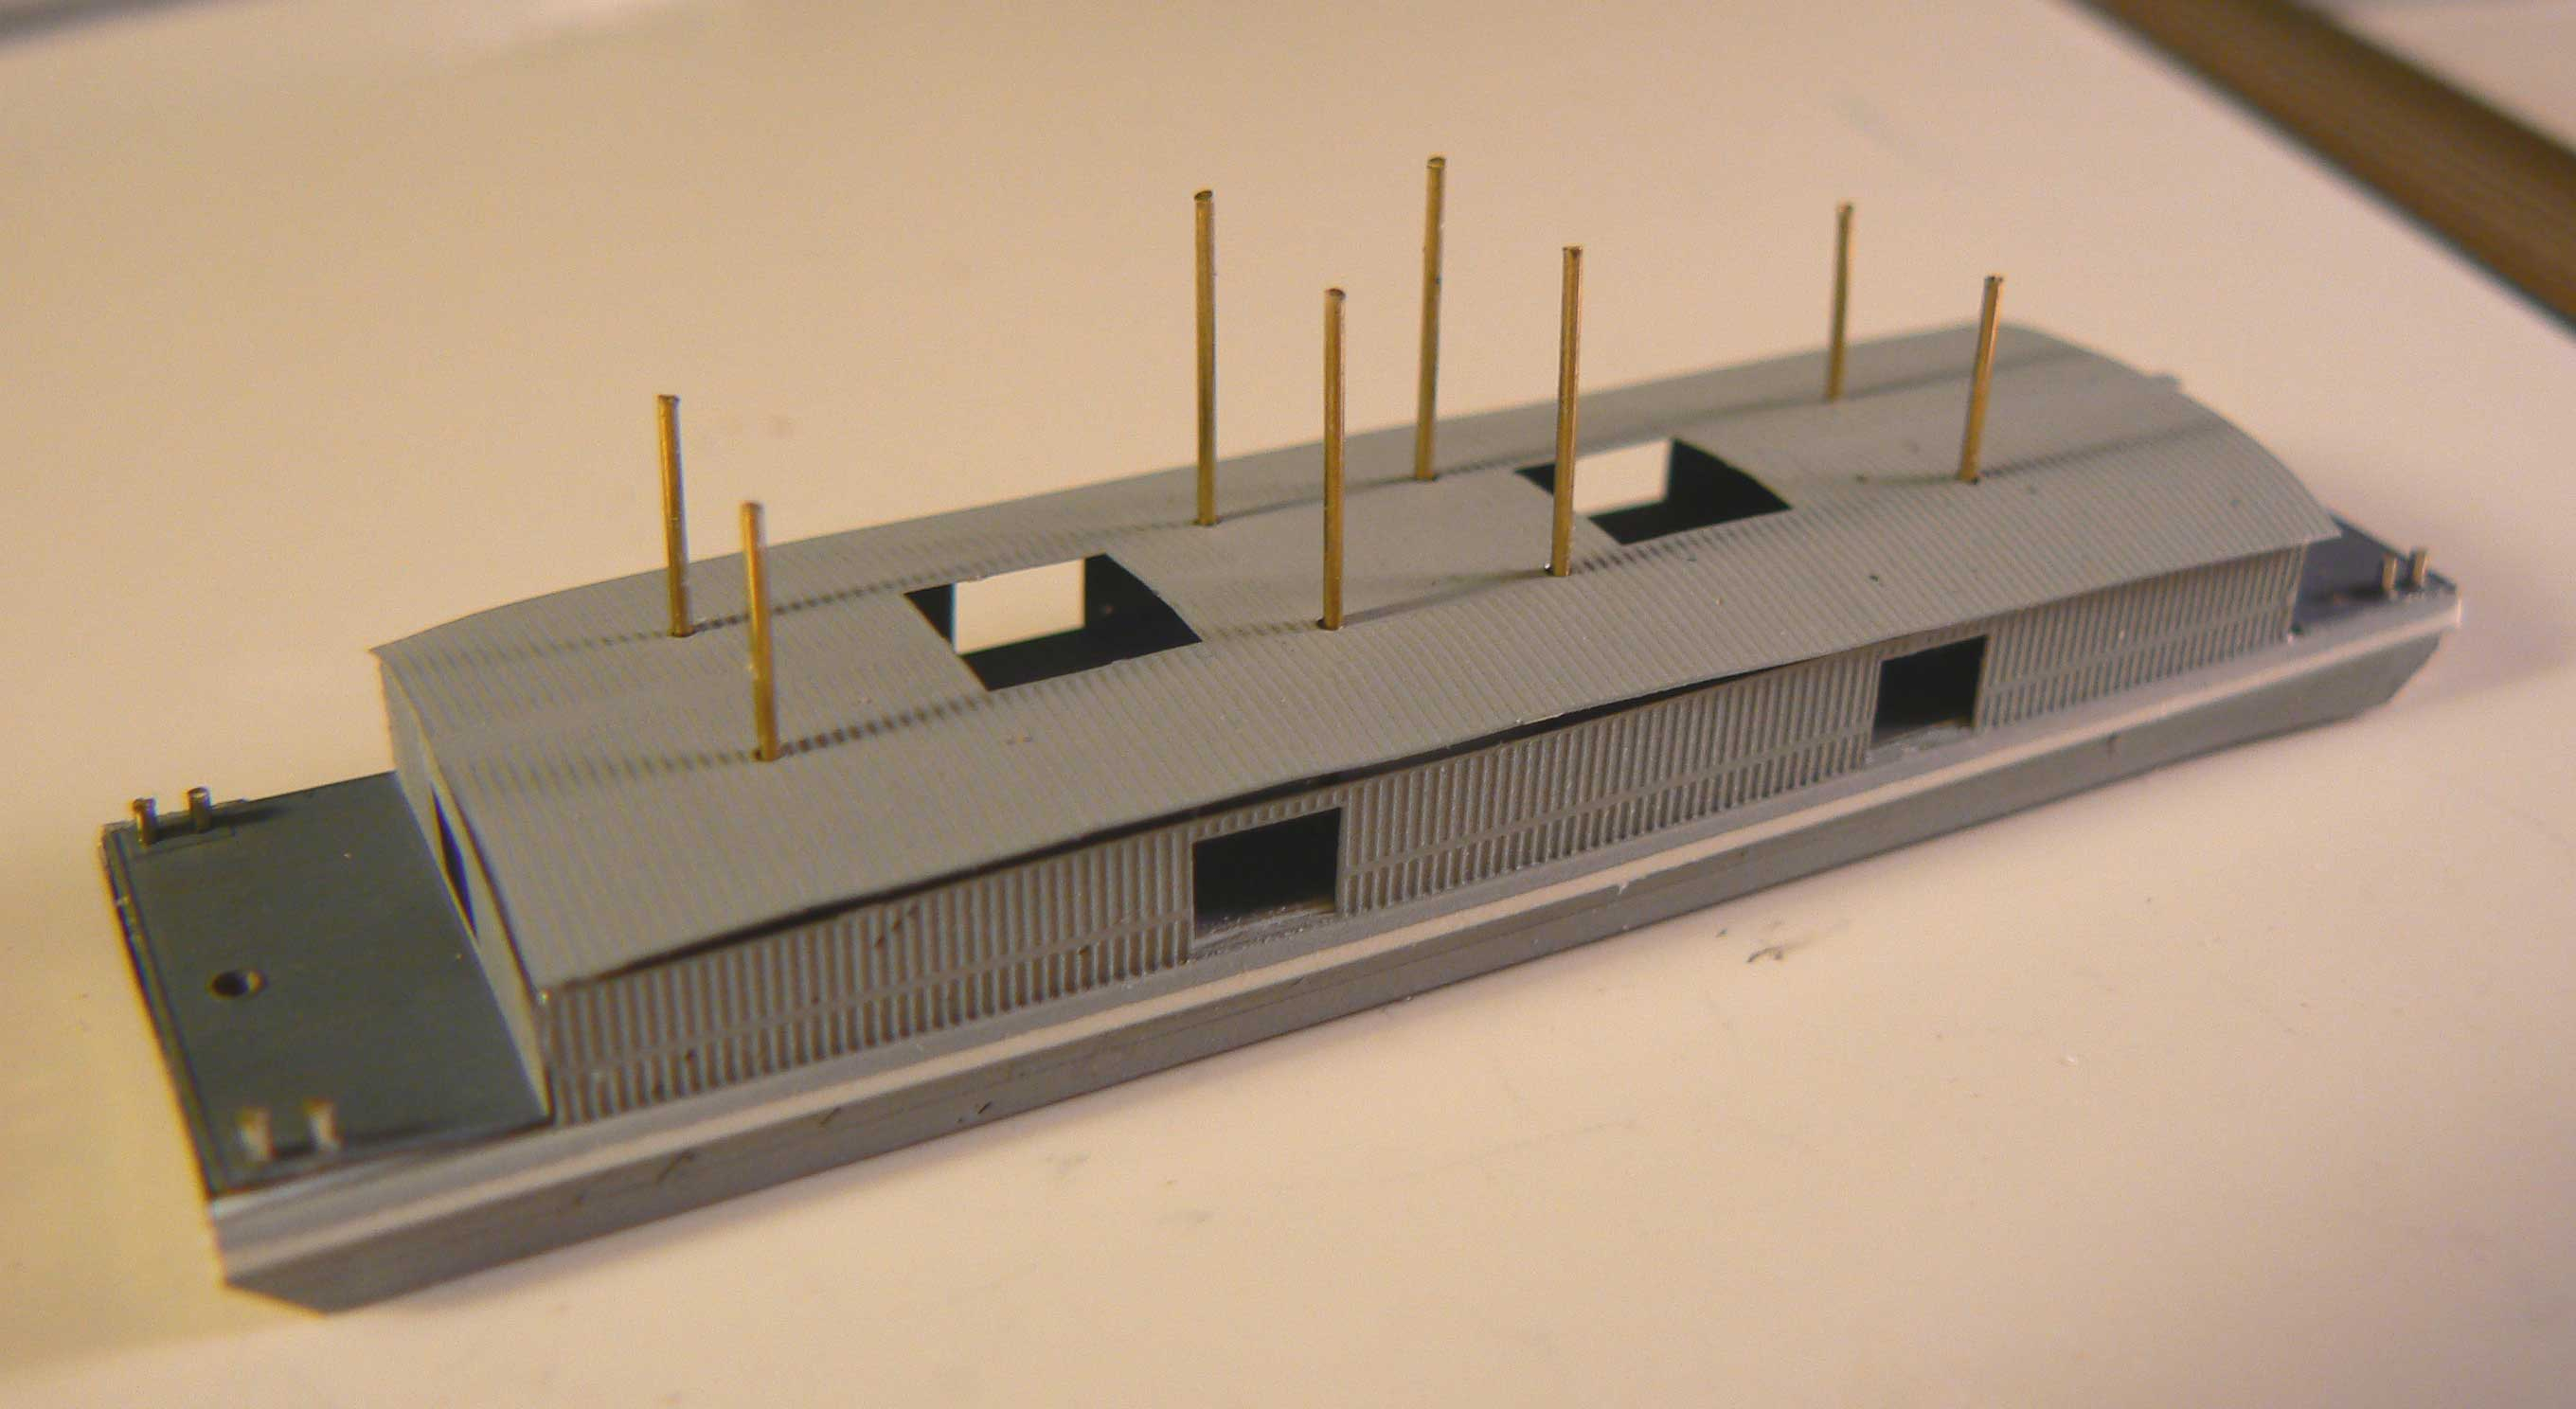 MARE ISLAND NAVAL SHIP YARD  1/700 - Page 3 NObJG2